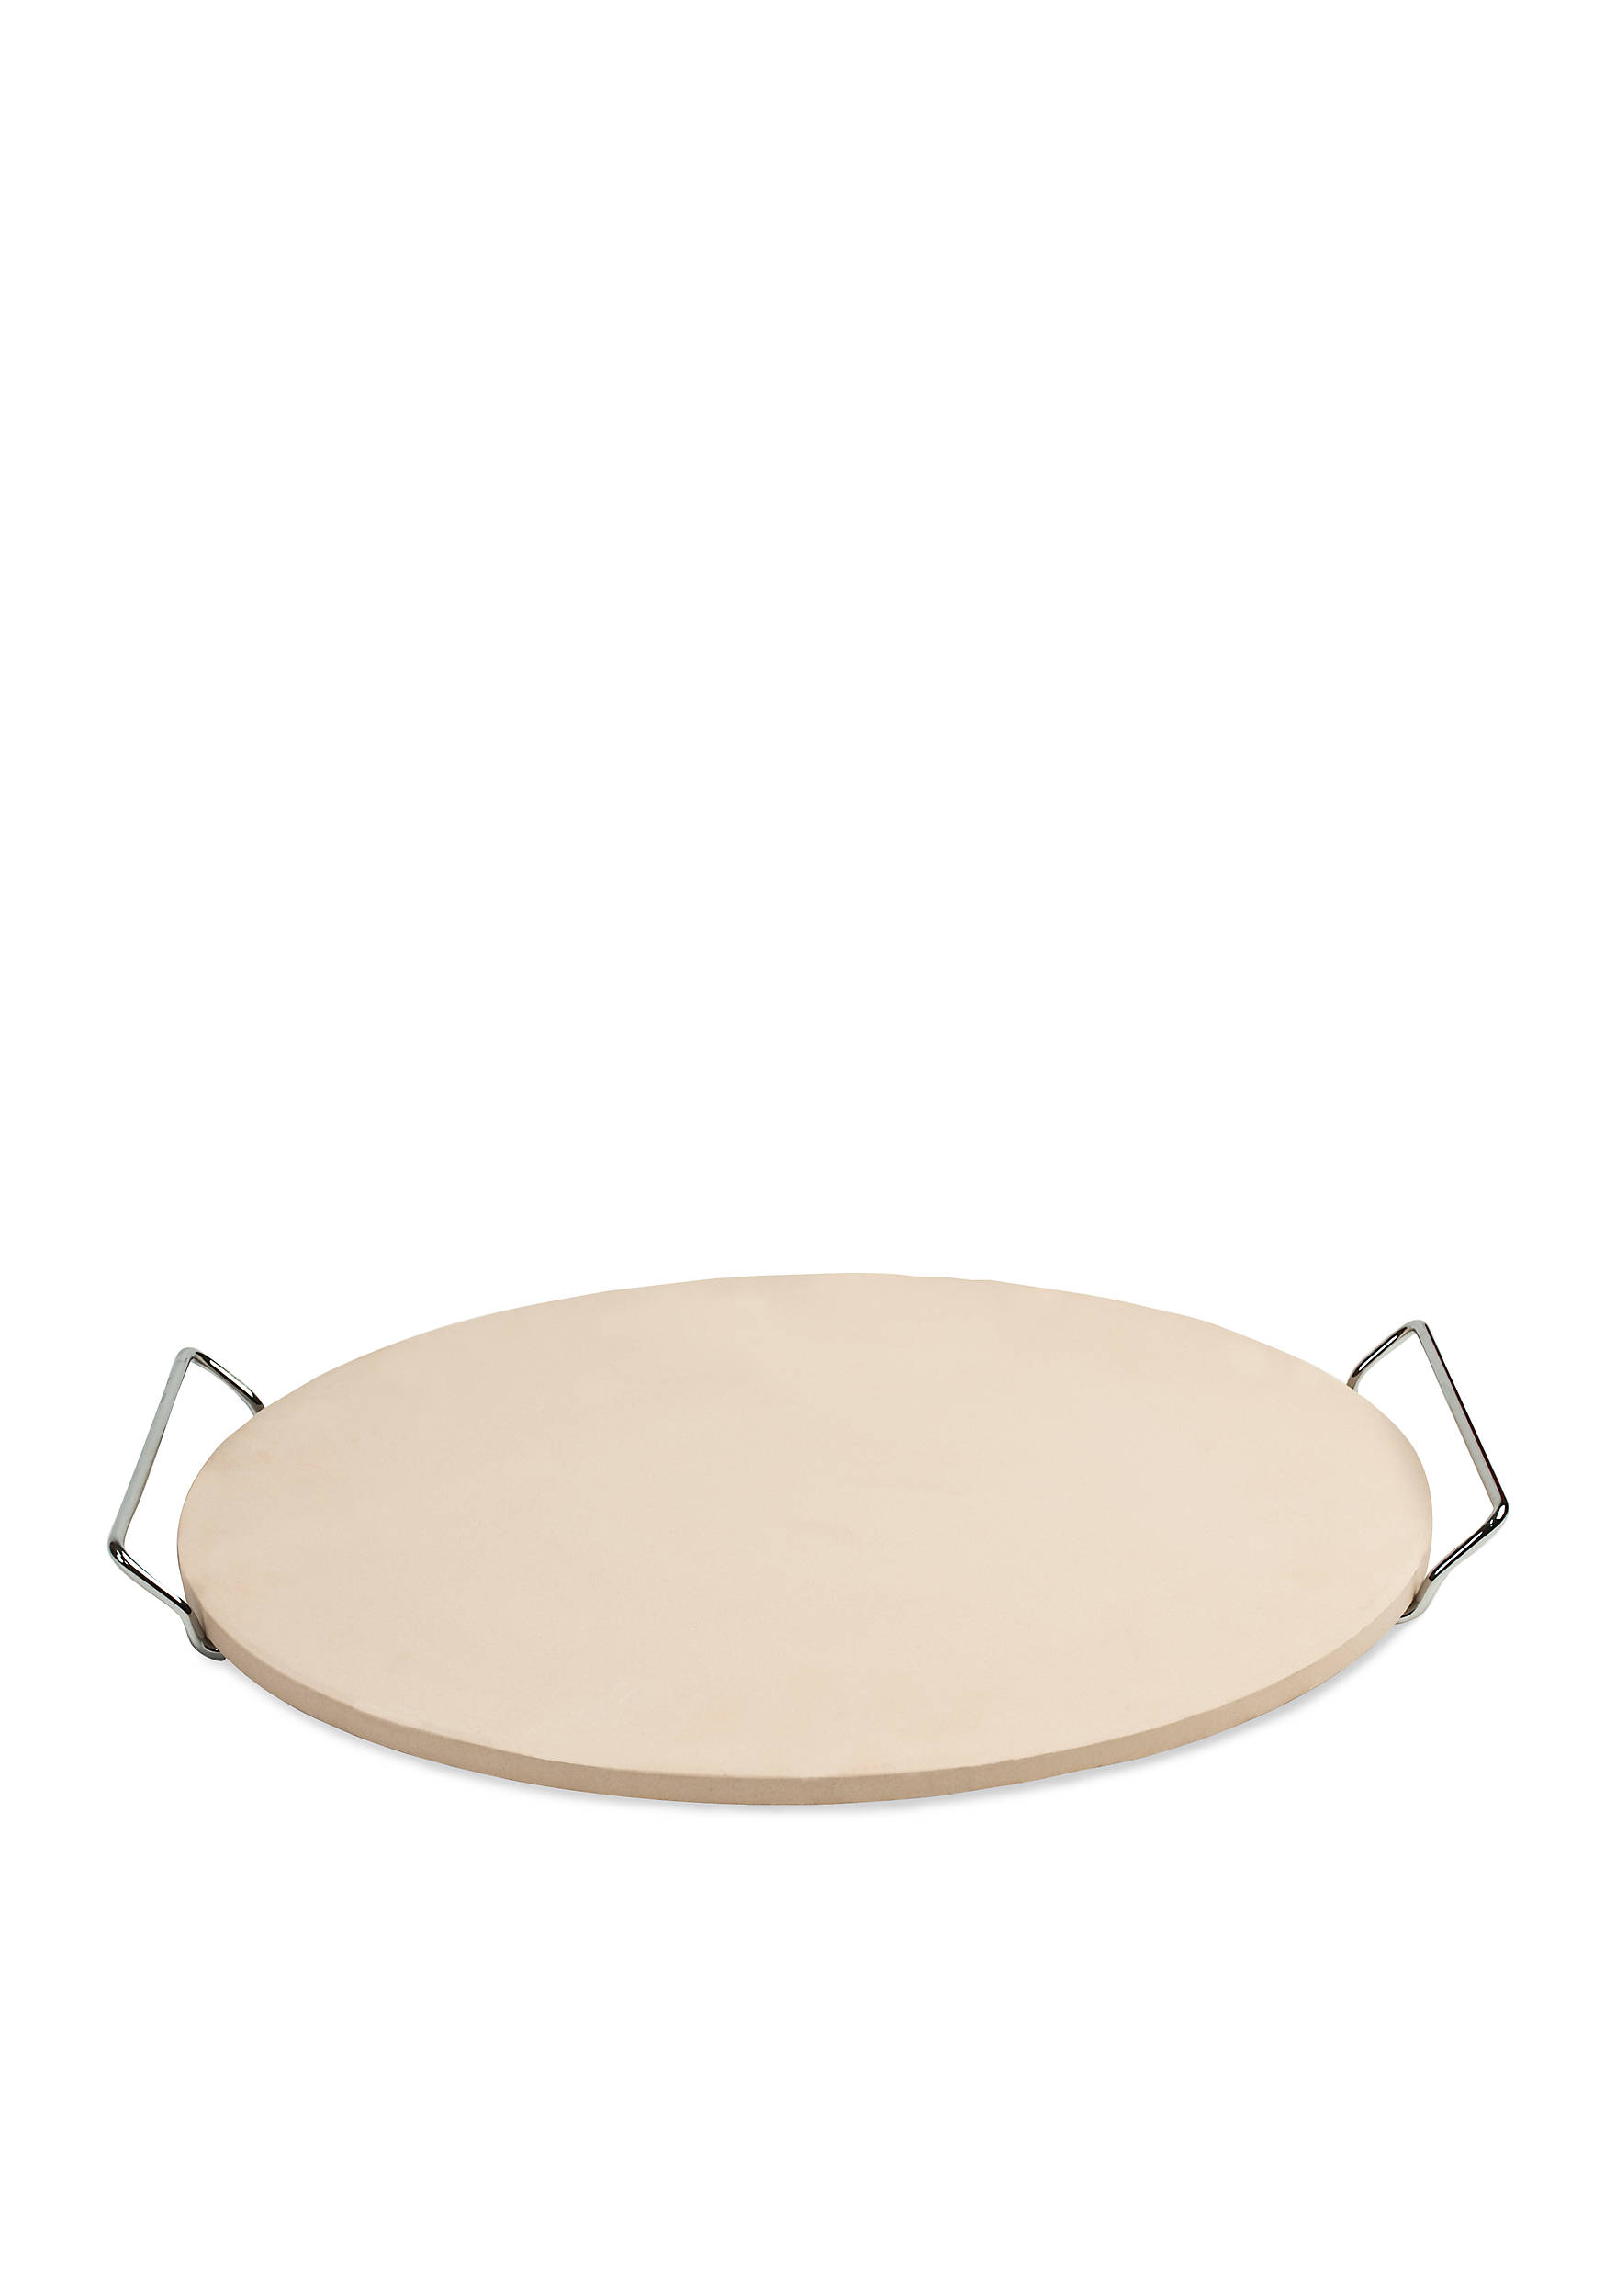 Cooks Tools™ 15-in. Round Pizza Stone with Wire Frame | belk